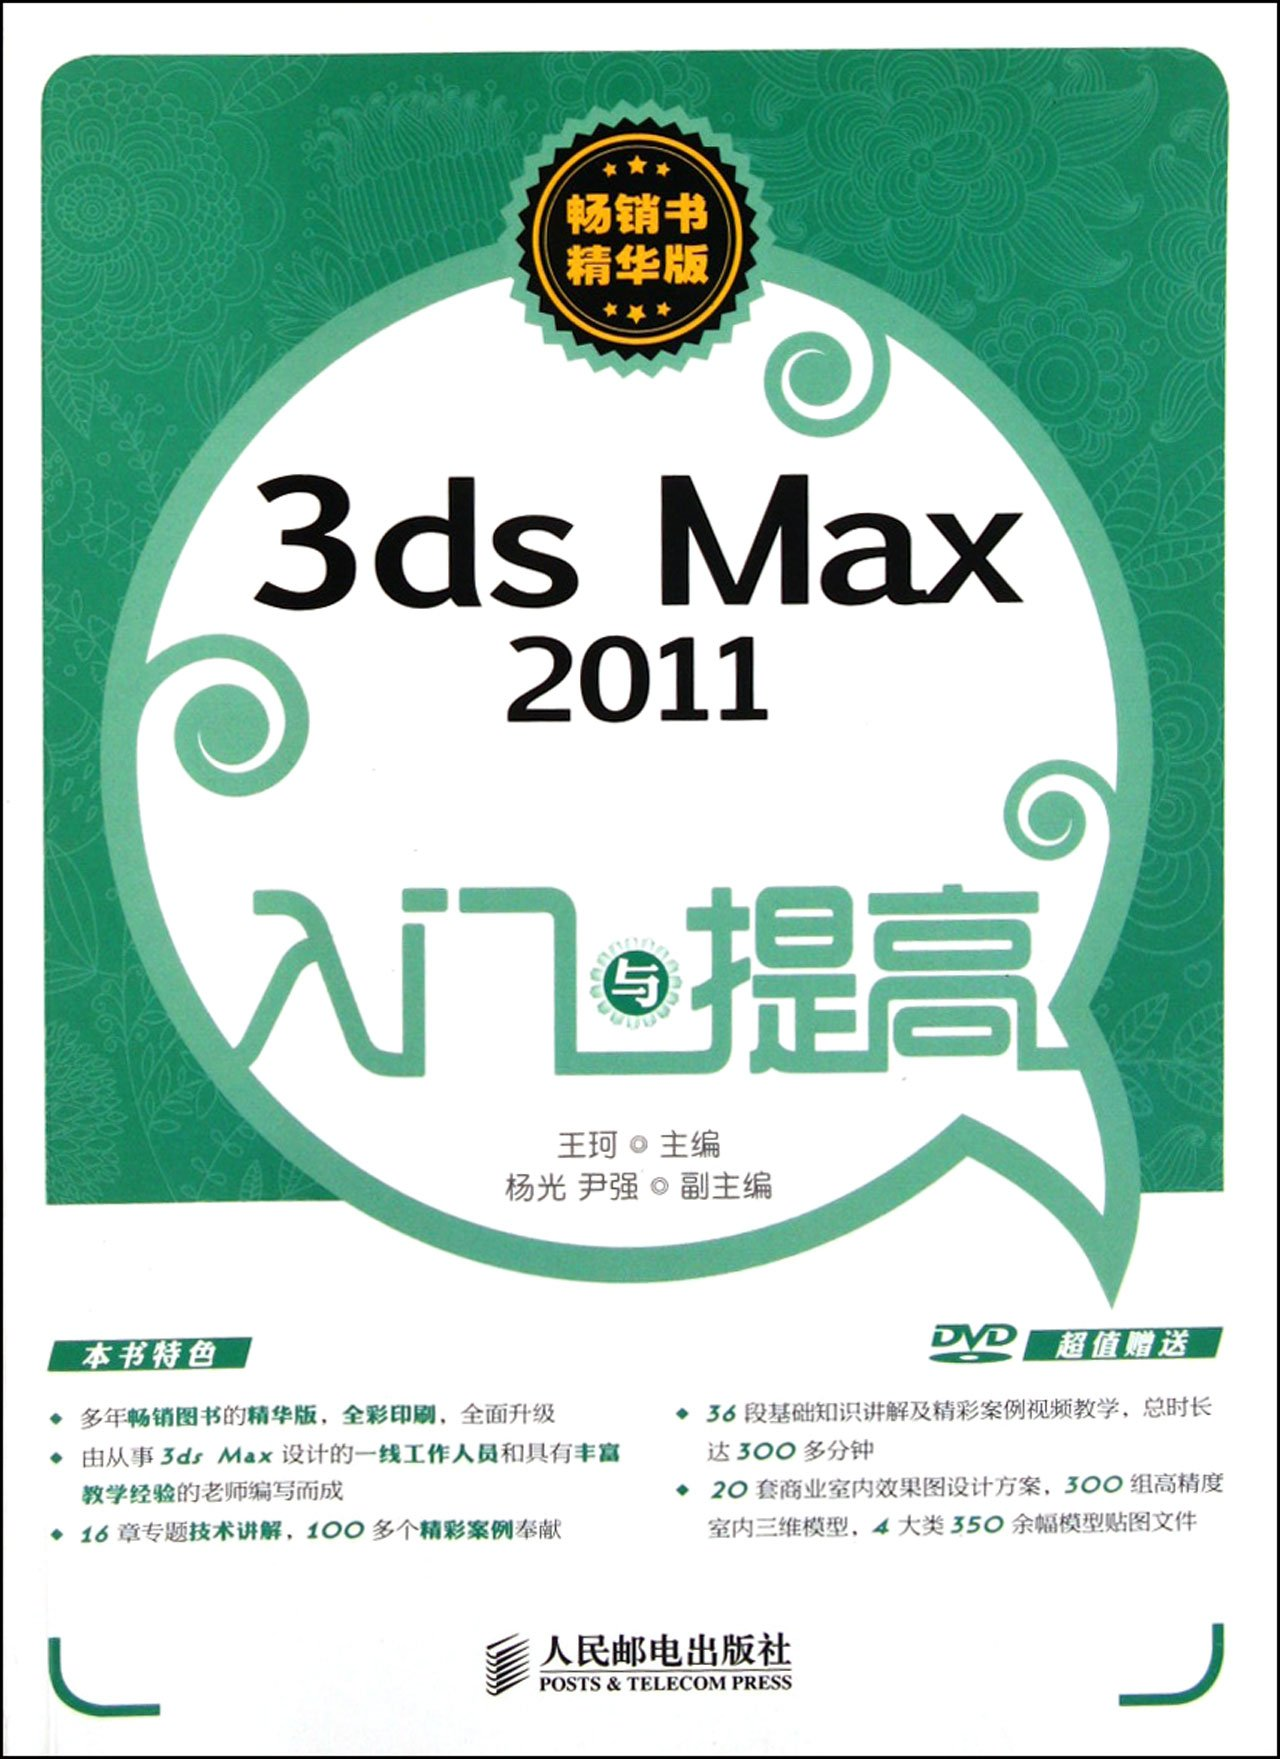 3ds Max 2011 - Introduction and Improvement (1DVD) (Color-printed) (Chinese Edition) PDF